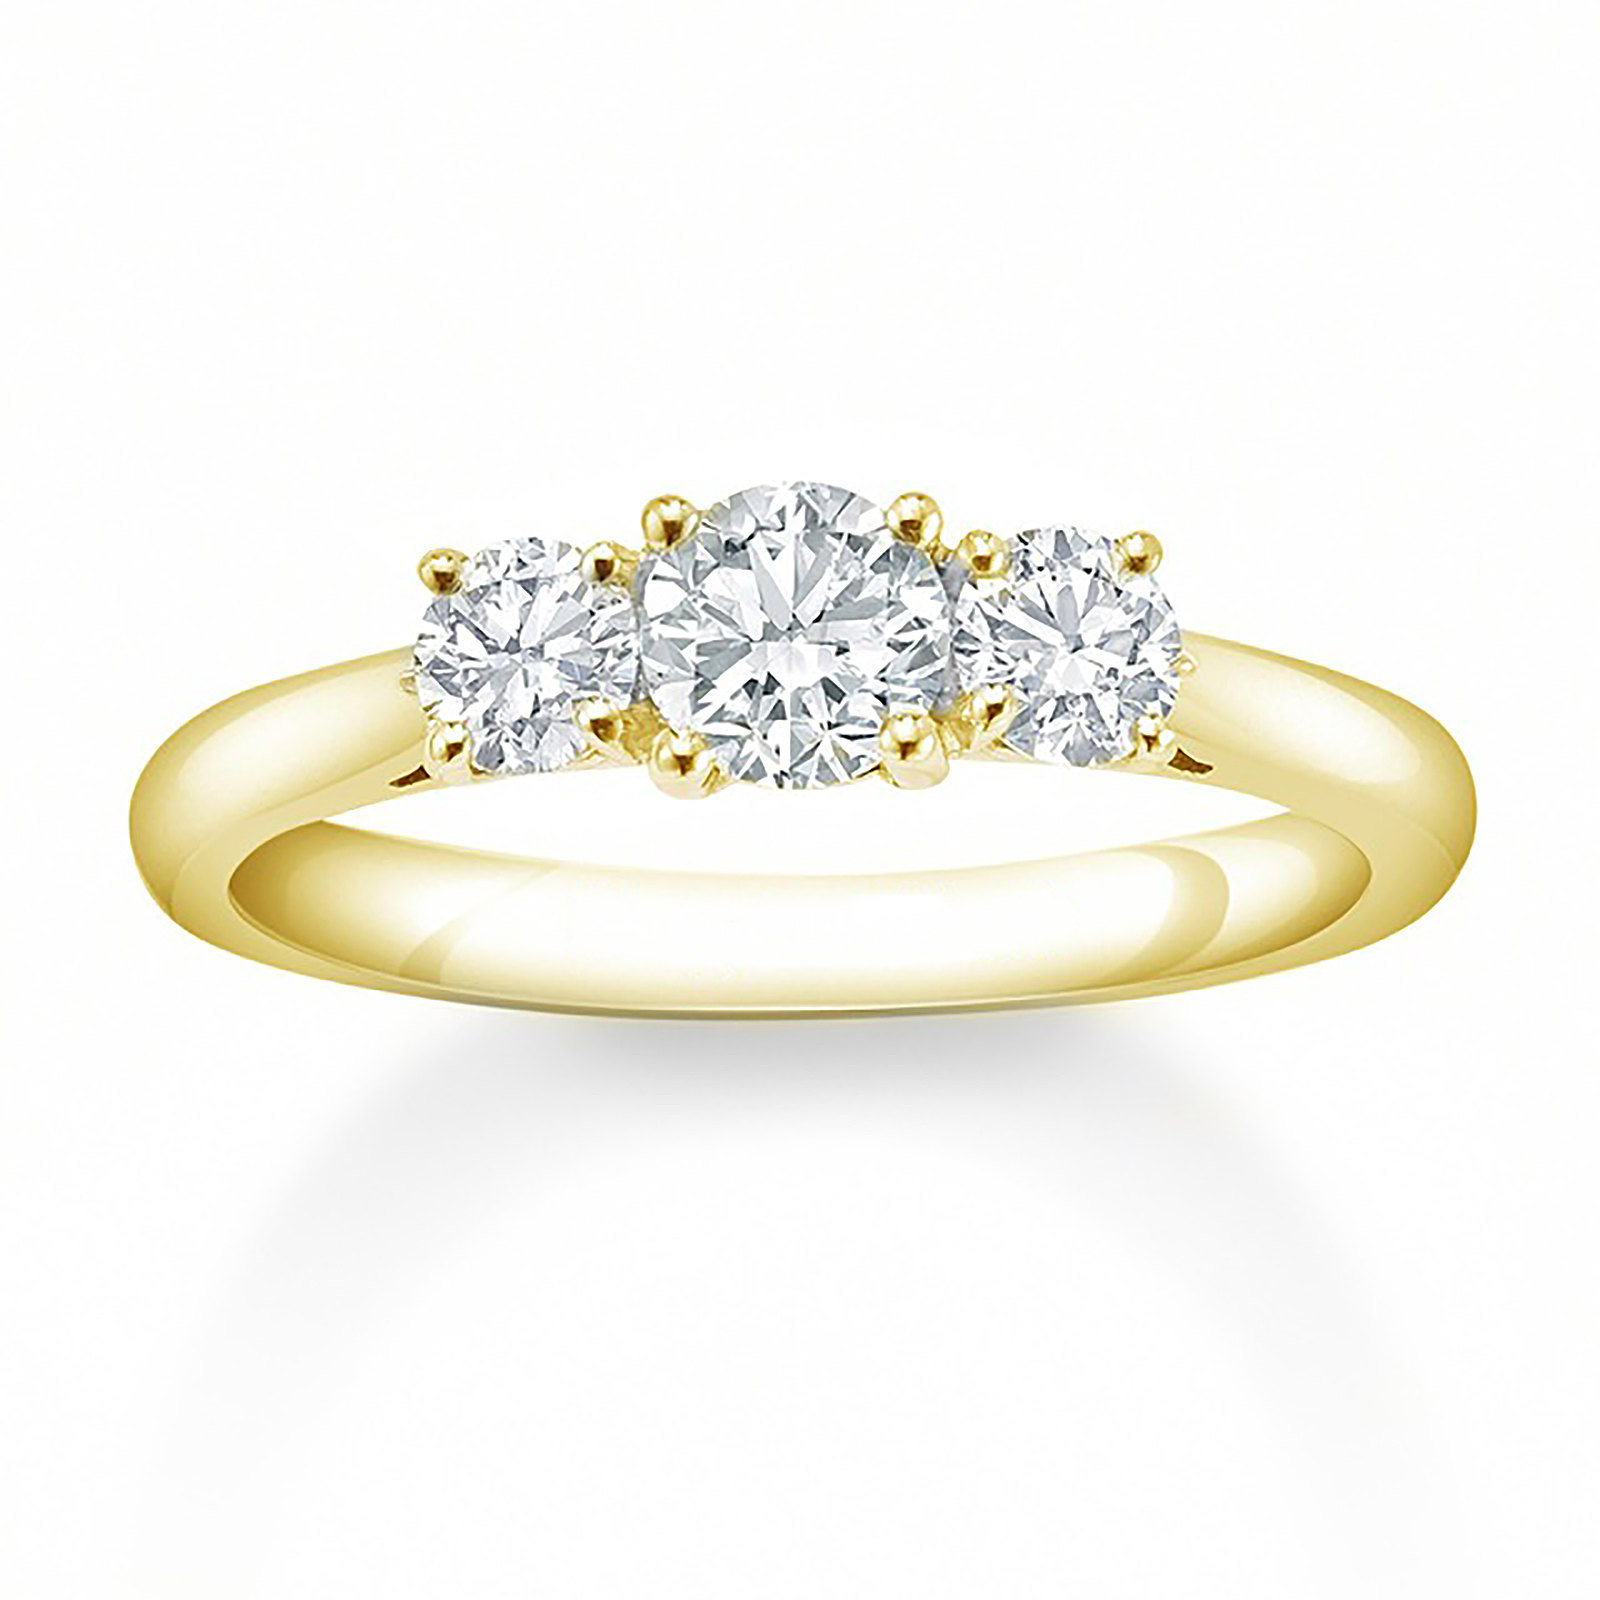 rings diamond simon ring ladies engagement gold jewels product by white g tashne